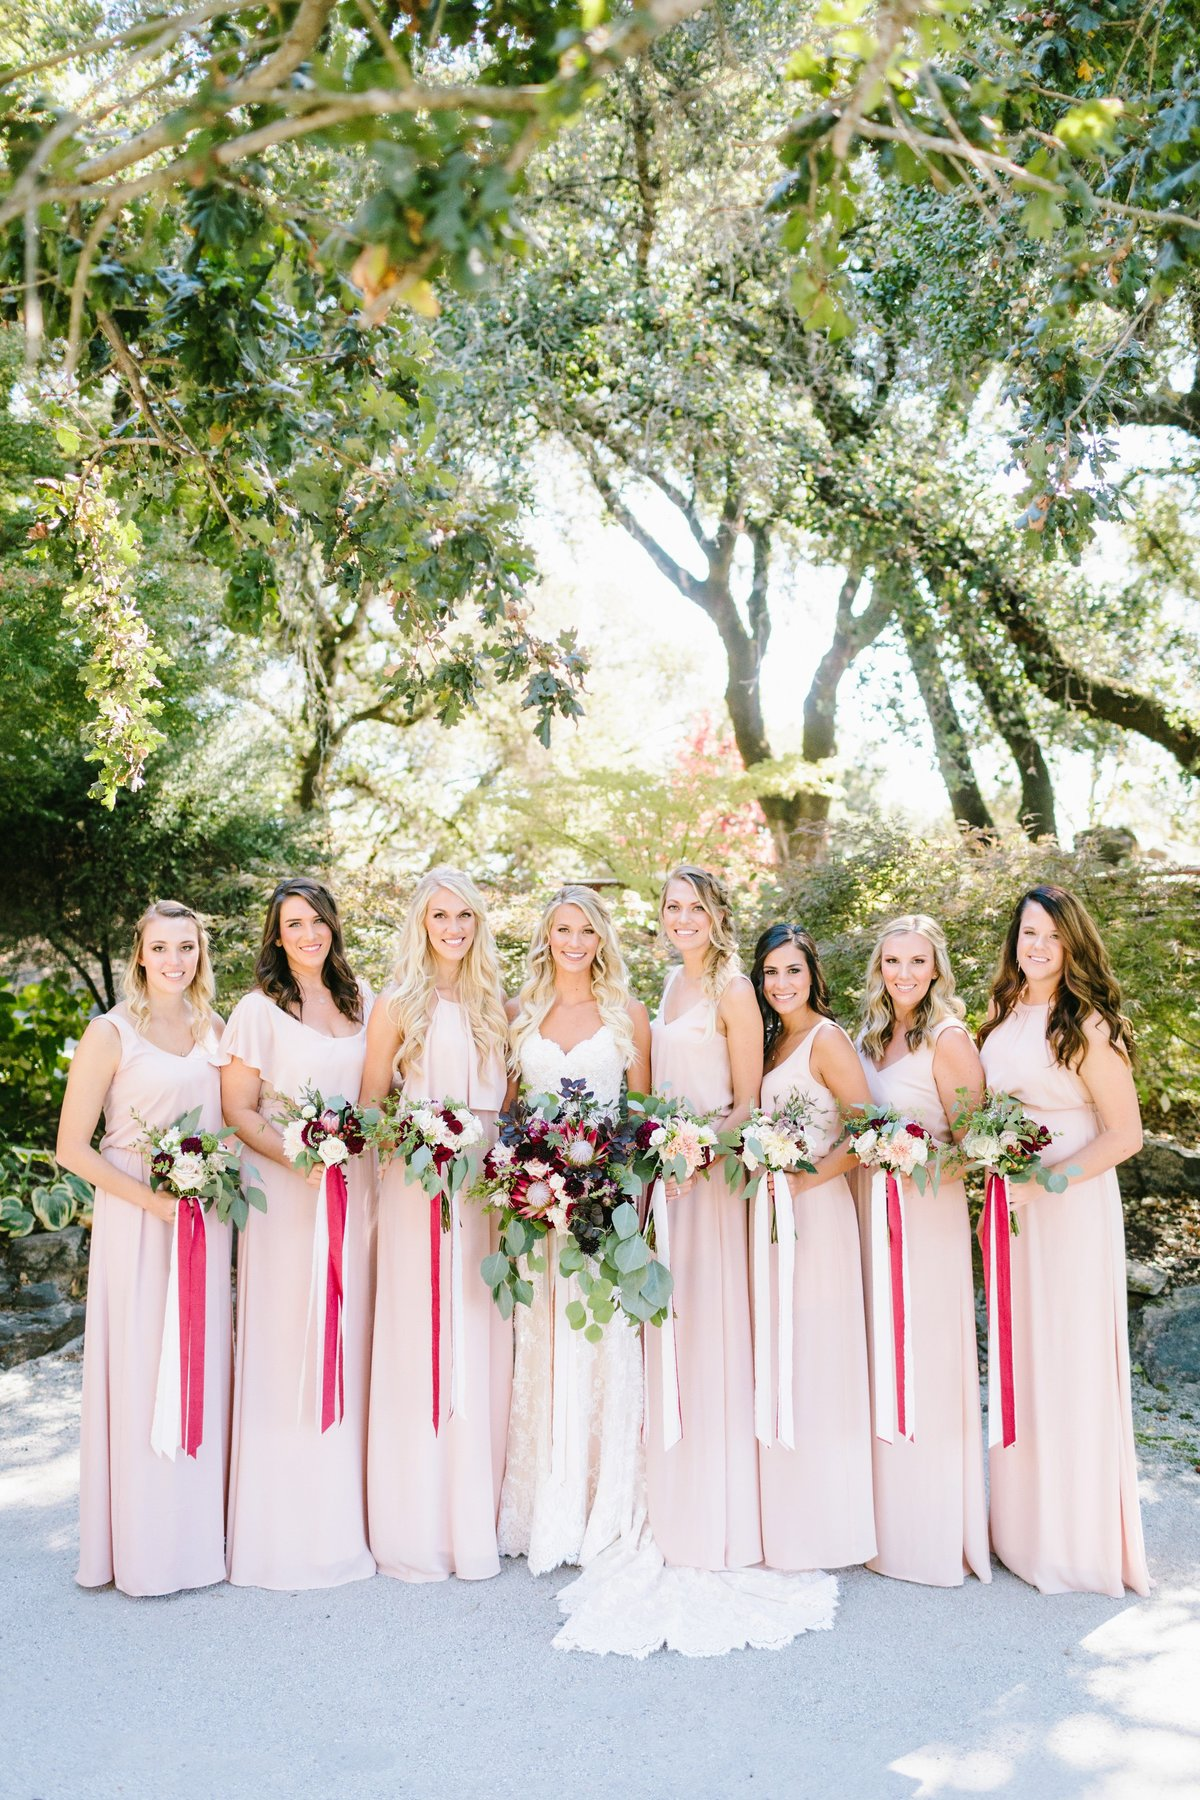 Best California Wedding Photographer-Jodee Debes Photography-151